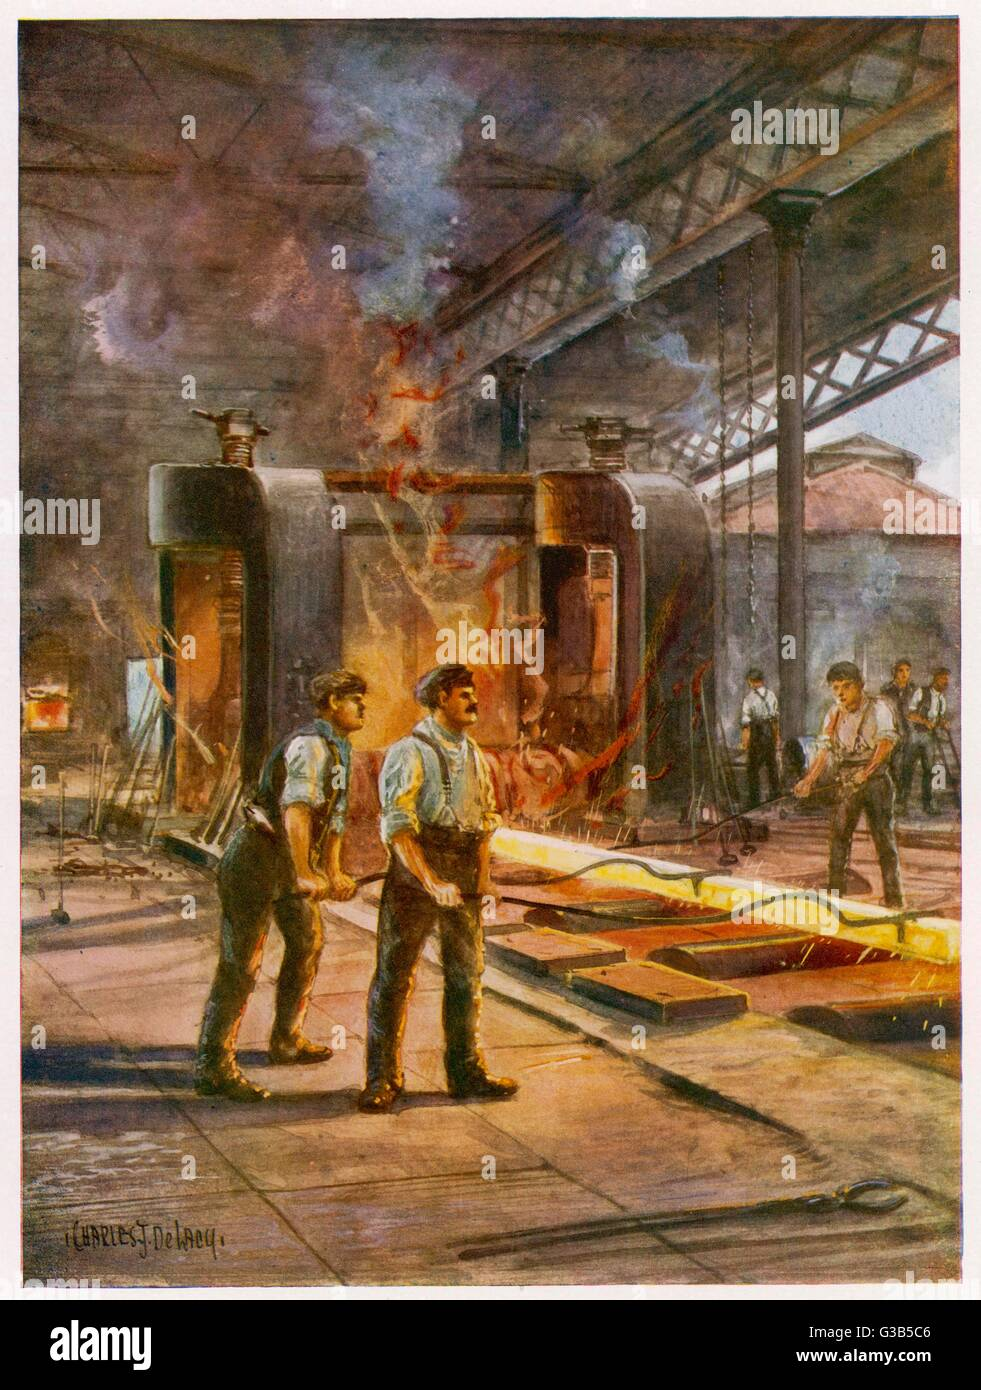 Rolling steel in a British  steelworks         Date: 1914-1918 - Stock Image